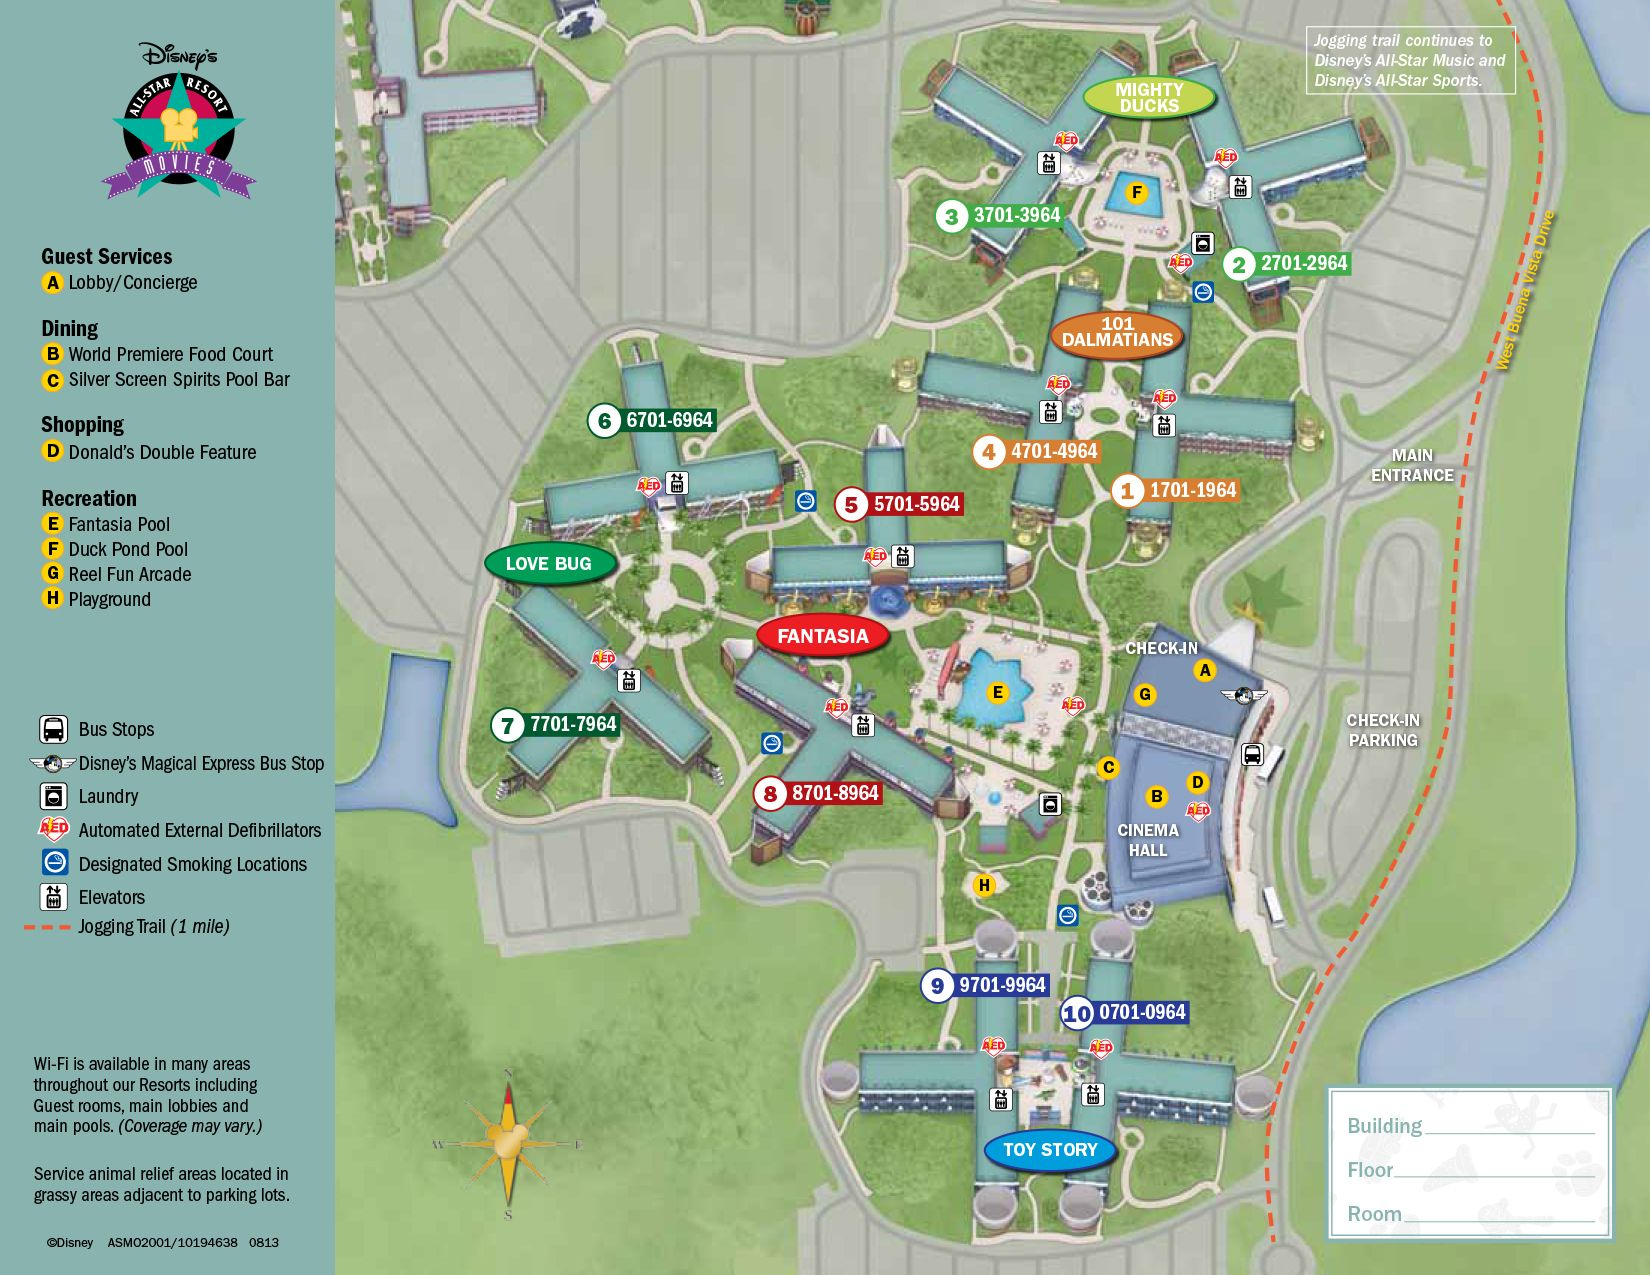 All star movies resort map pinterest walt disney resorts and movie all star movies resort map walt disney world gumiabroncs Choice Image